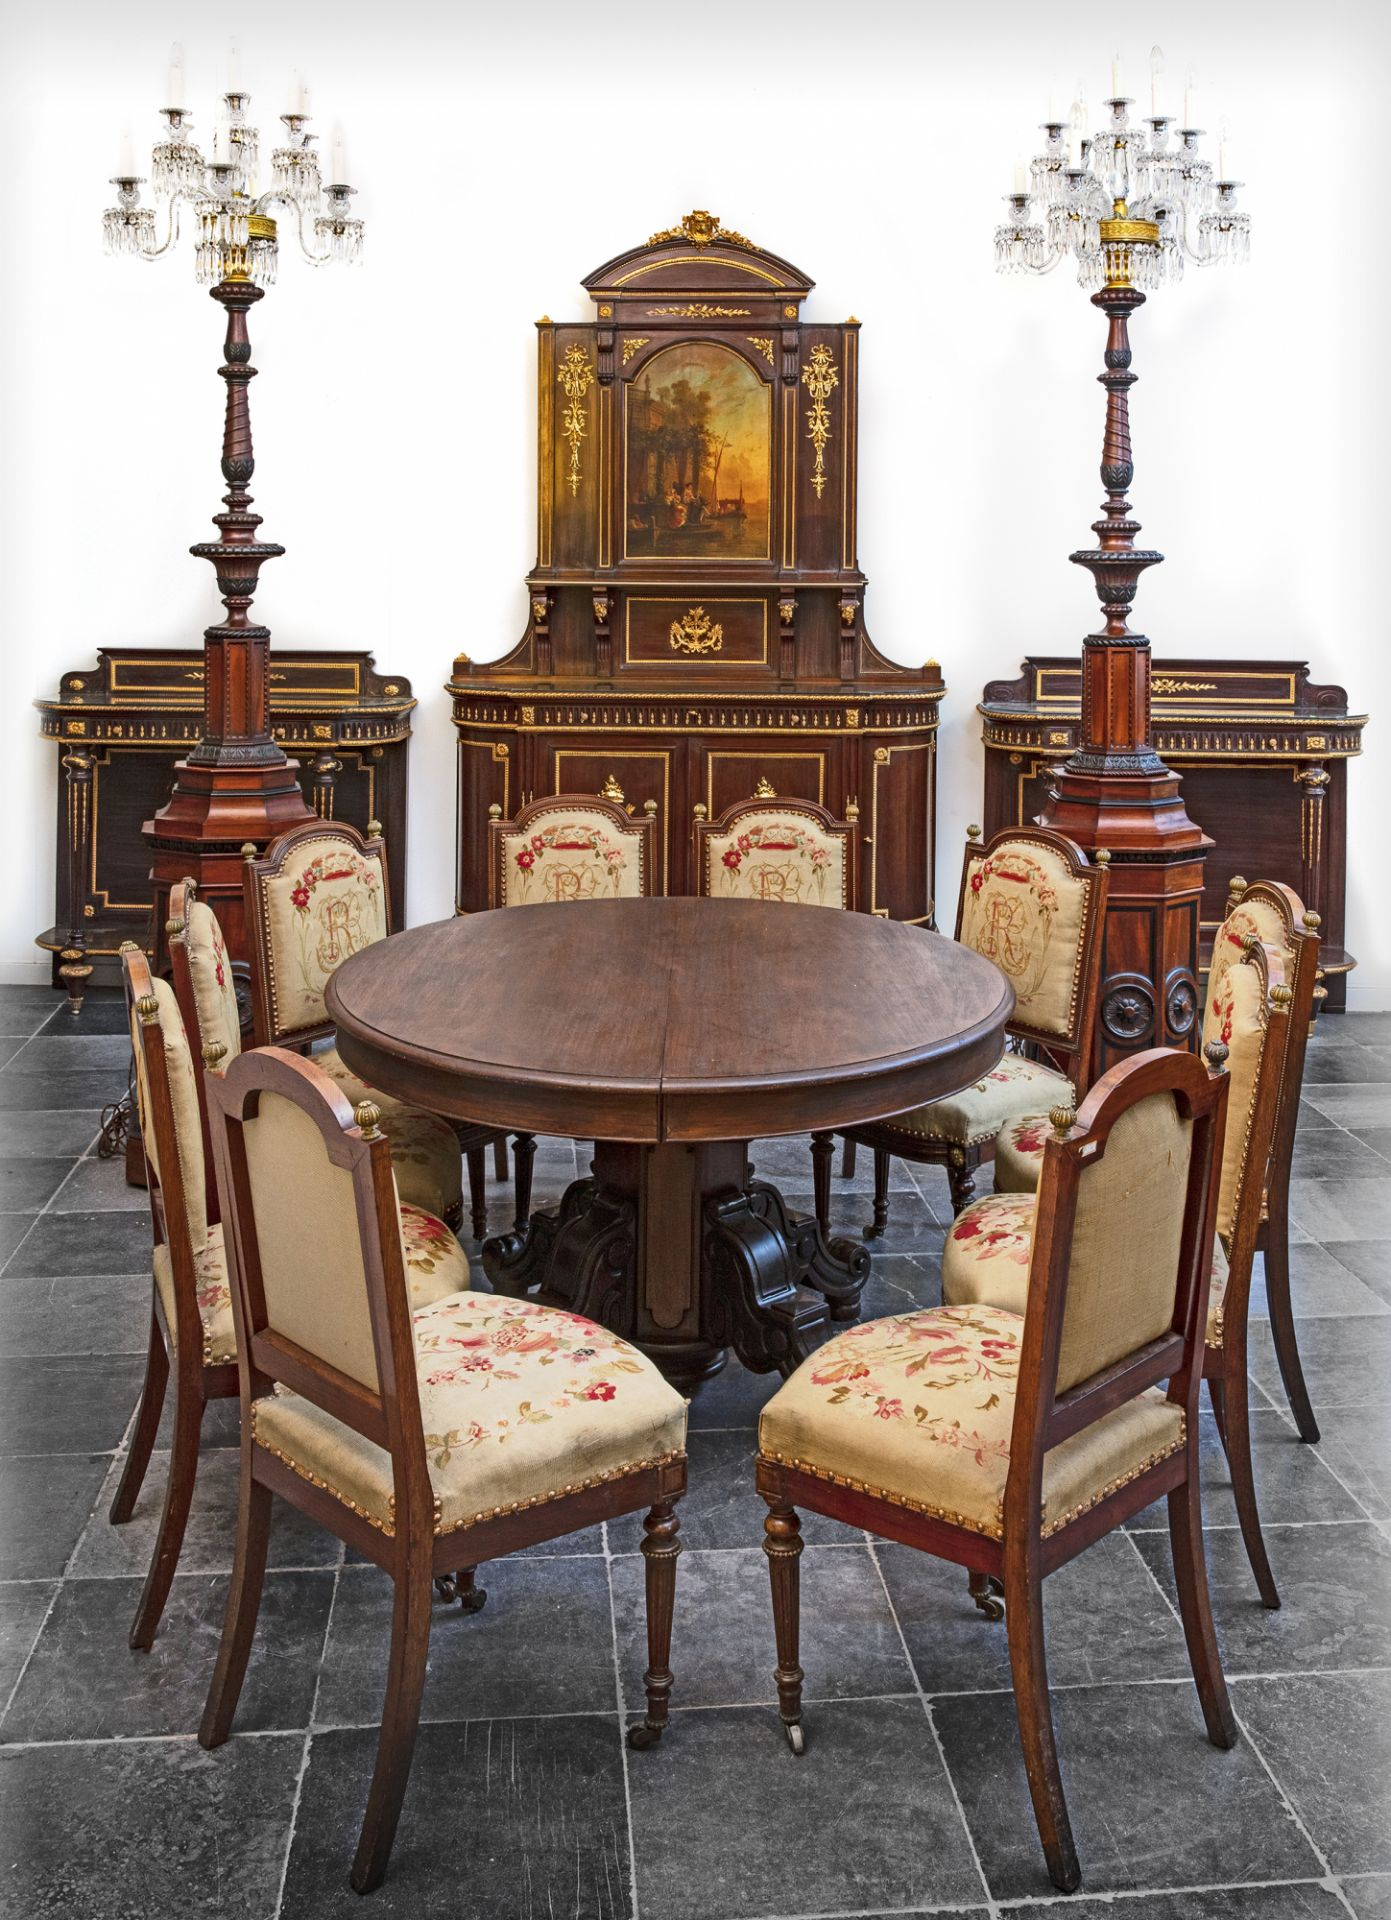 A FRENCH MAHOGANY DINING ROOM SET, 19TH CENTURY